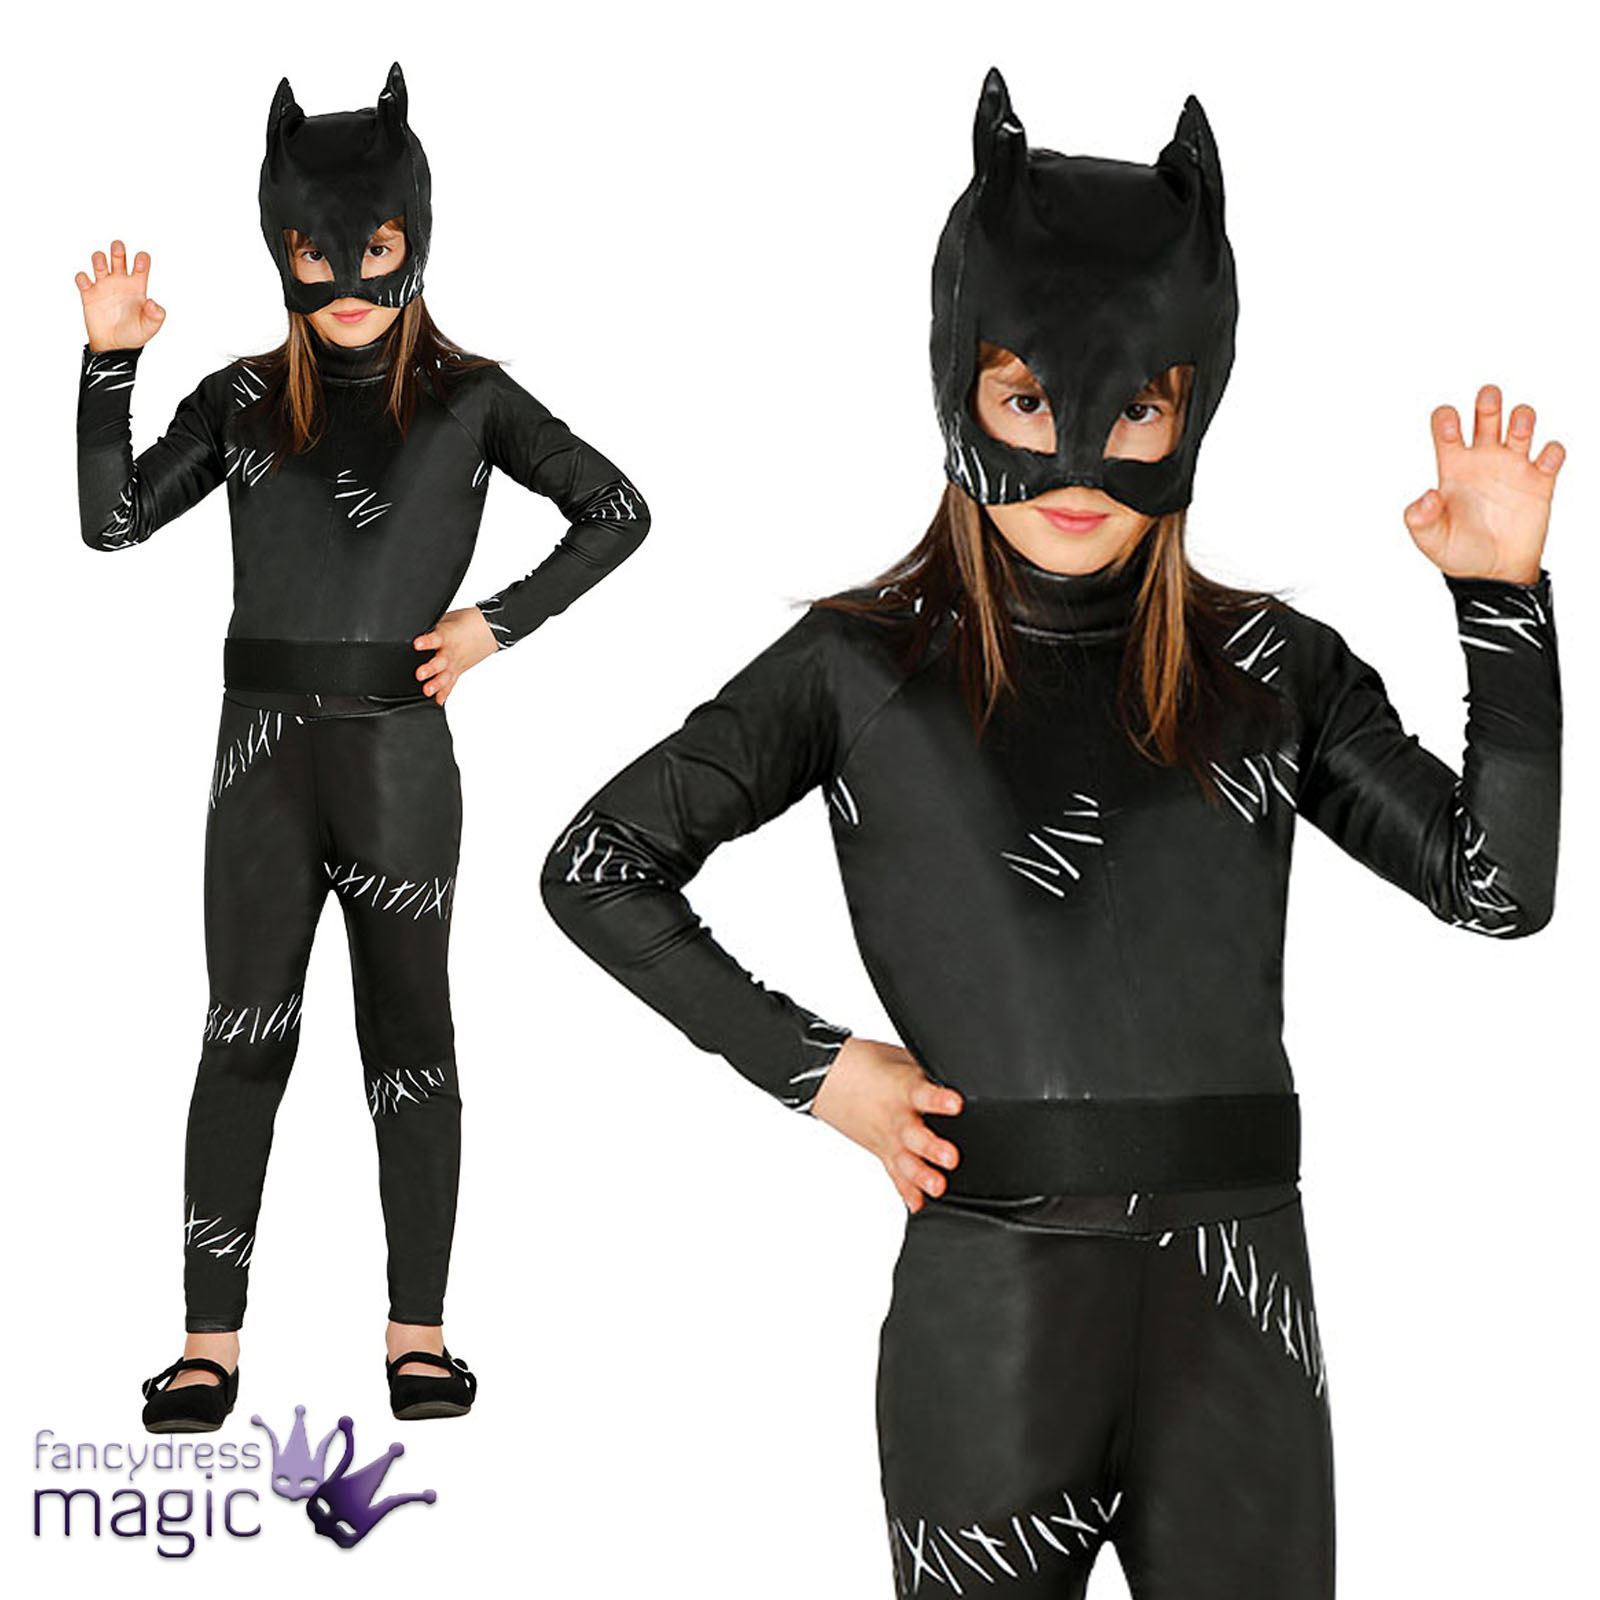 Childs Halloween Gato Negro Dama Superhéroe Villano Fancy Dress Costume And Mask